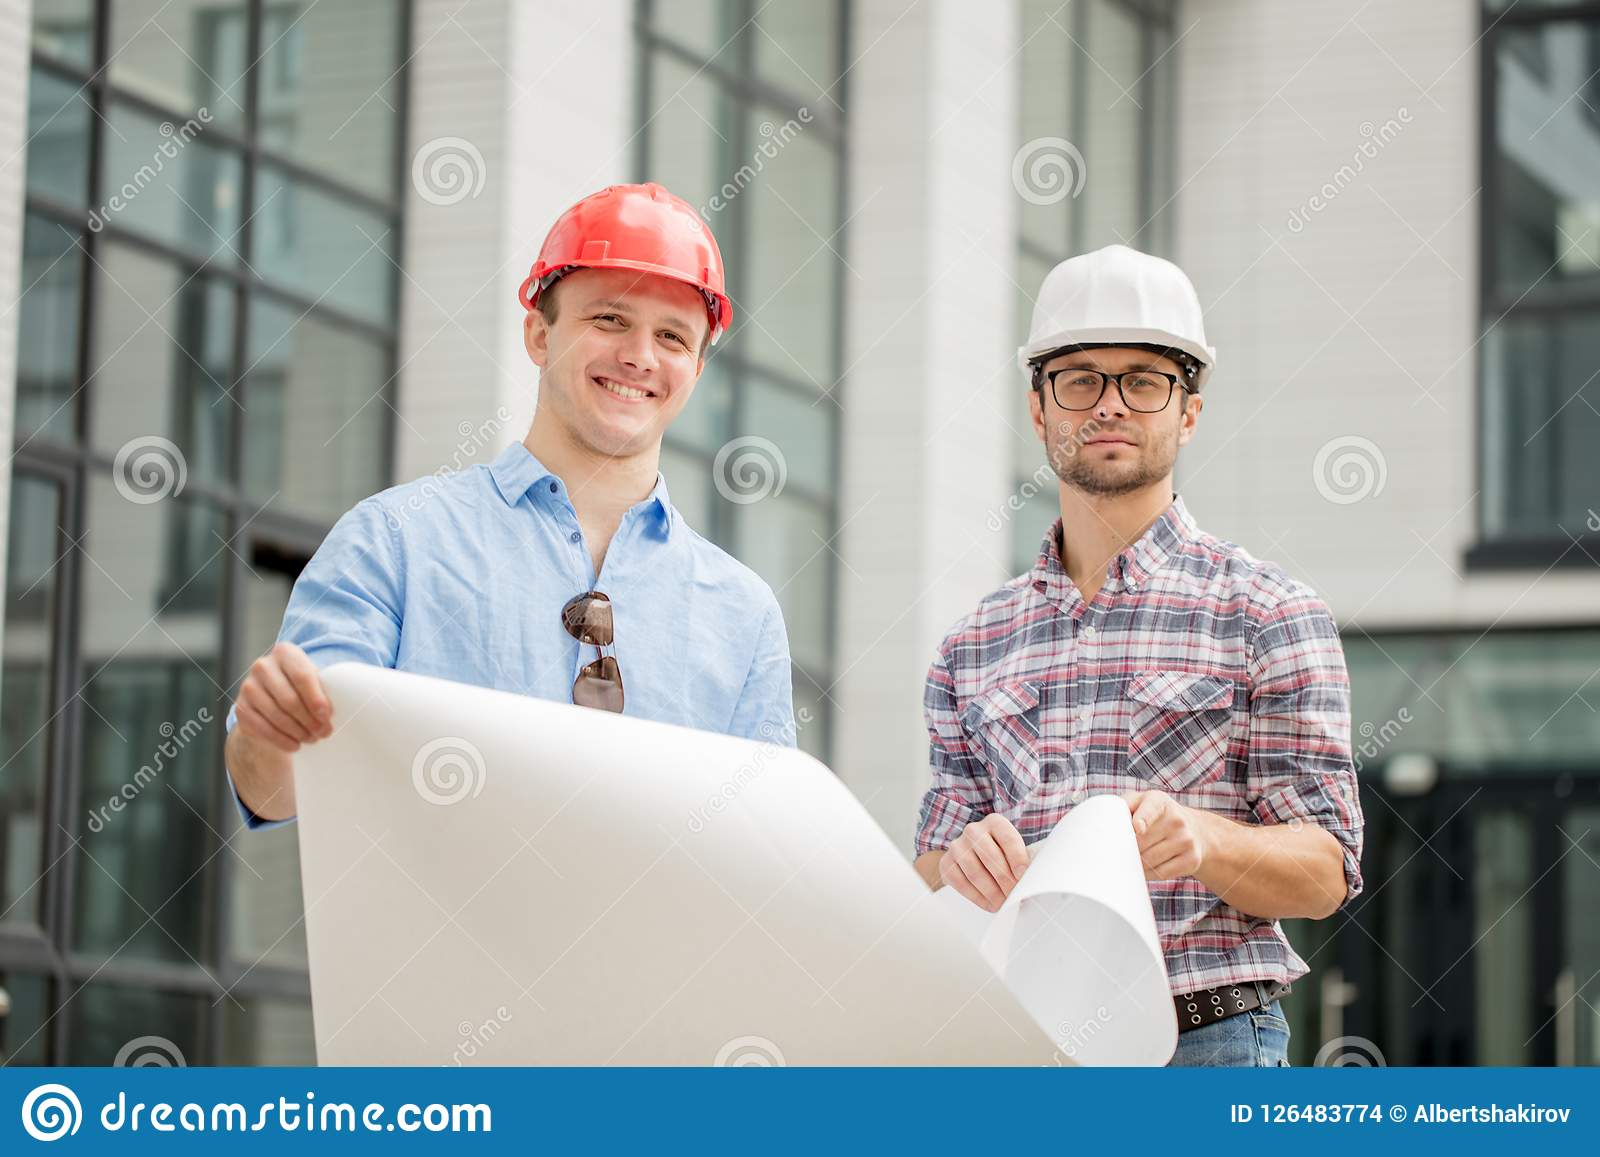 Two young talented engineers are holding scheme of construction